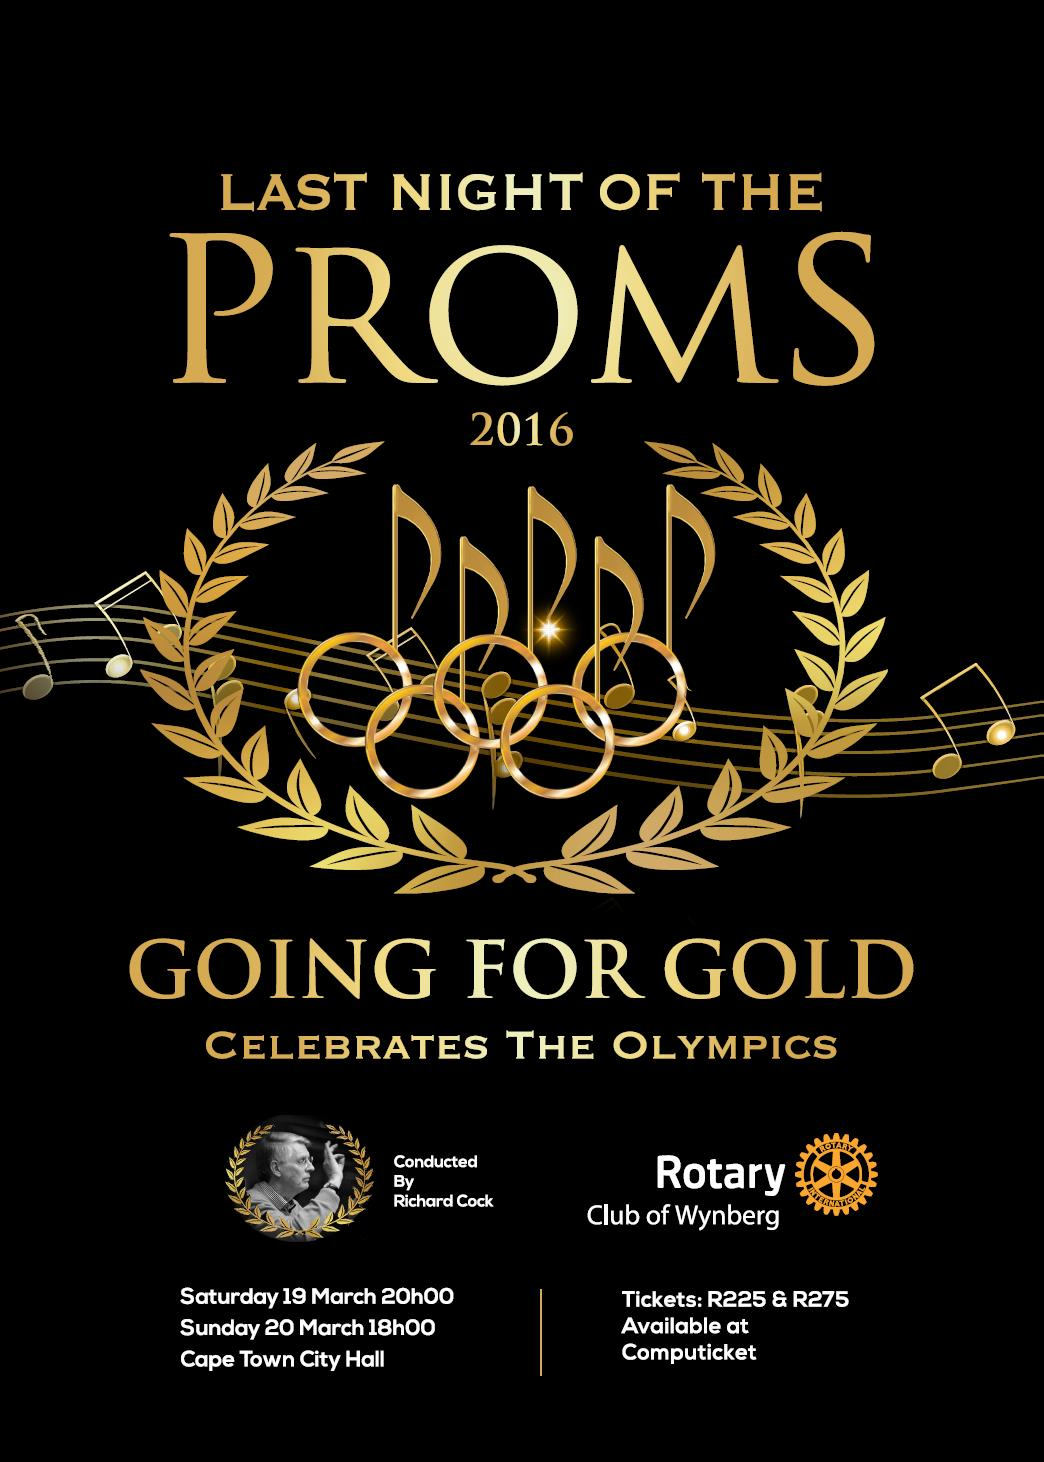 Tickets on sale on Friday for Last Night of the Proms 19 and 20 March ...